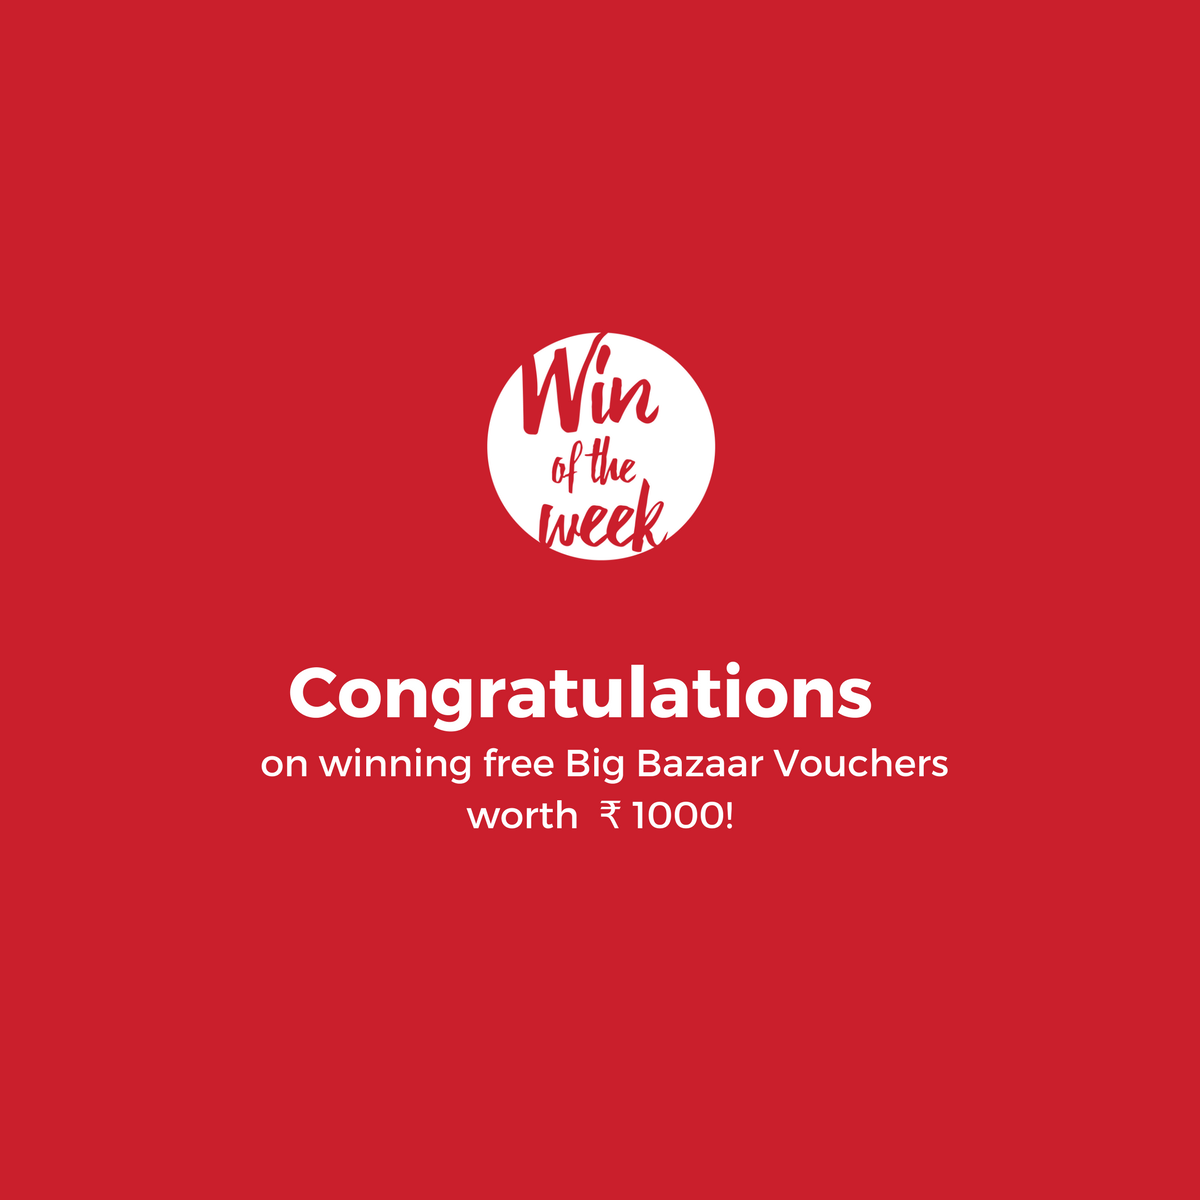 Winner - Win of the Week - Free Big Bazaar Vouchers